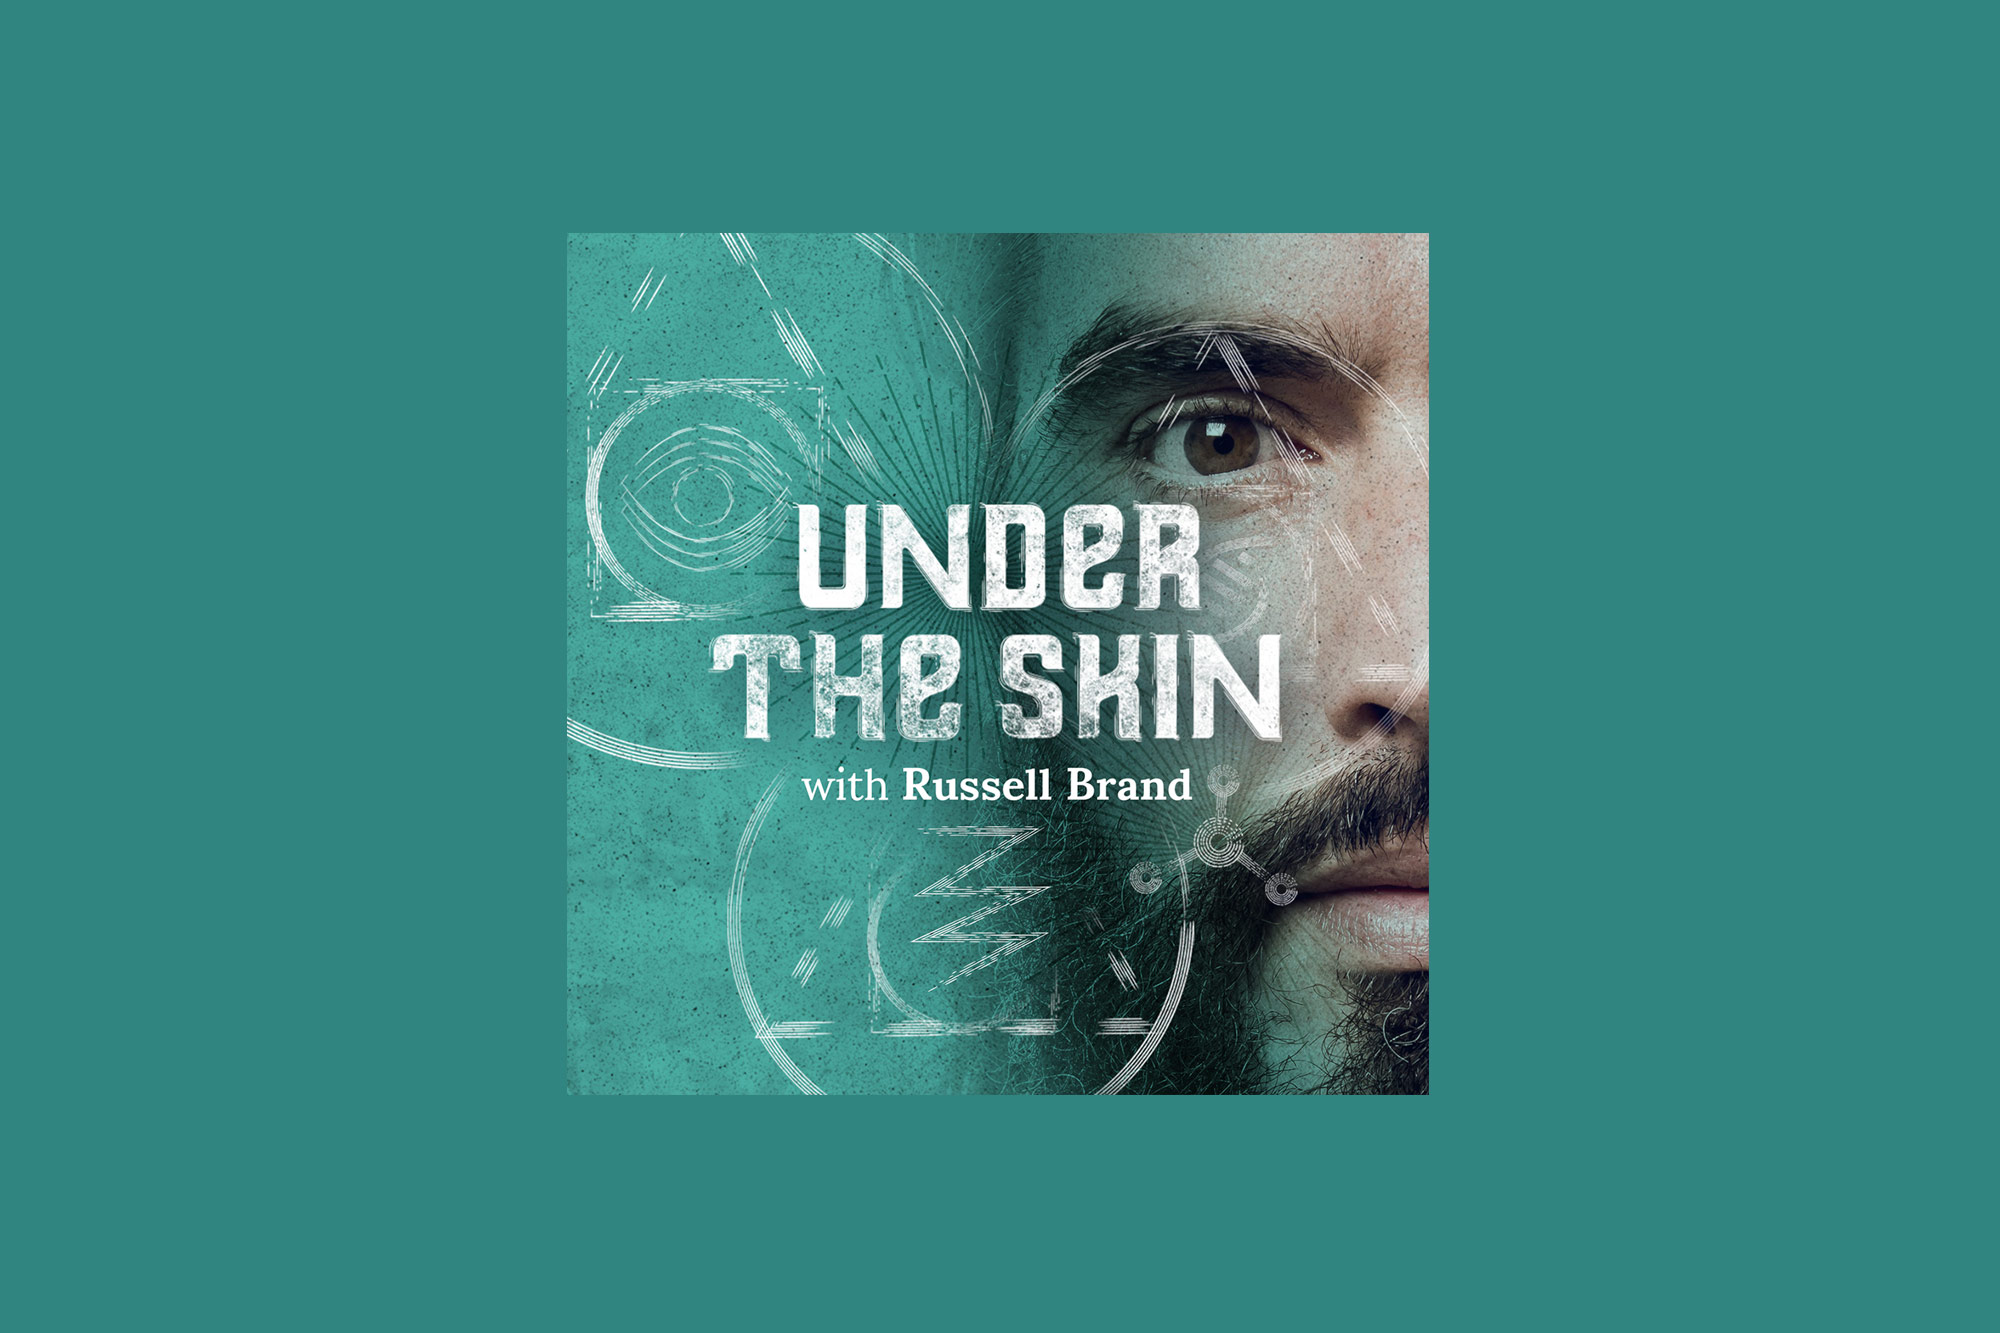 gareth-paul-jones-studio-design-russell-brand-under-the-skin-podcast-season-2-case-study-02